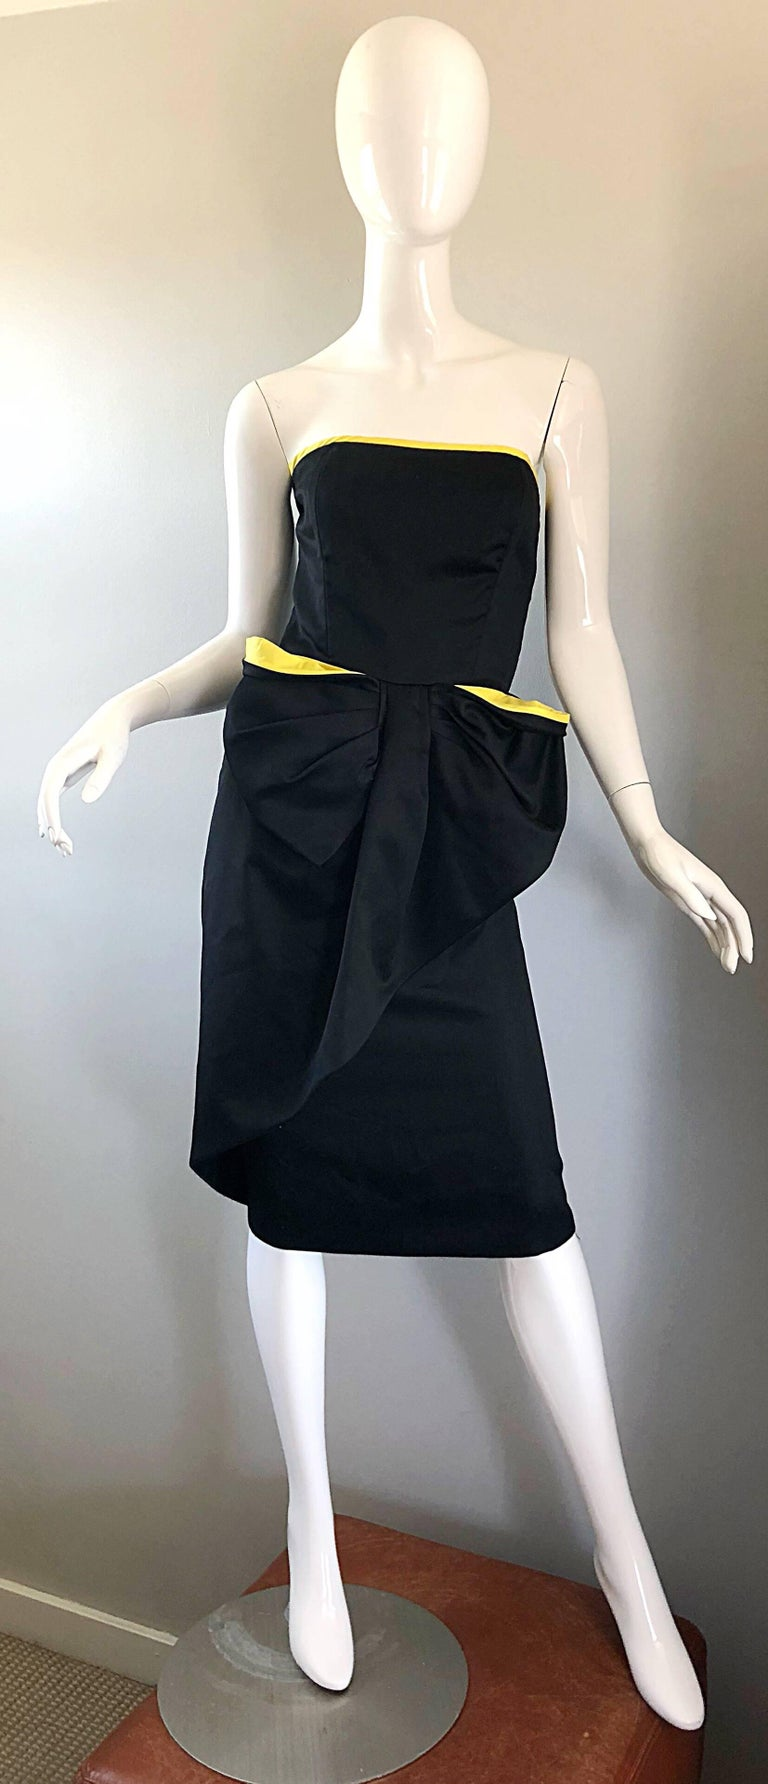 Chic late 80s VICTOR COSTA black and yellow Avant Garde strapless cotton cocktail dress! Features a fitted boned bodice that is lined in canary yellow. Forgiving skirt features a large  bow-like detail. Hidden zipper up the back with hook-and-eye